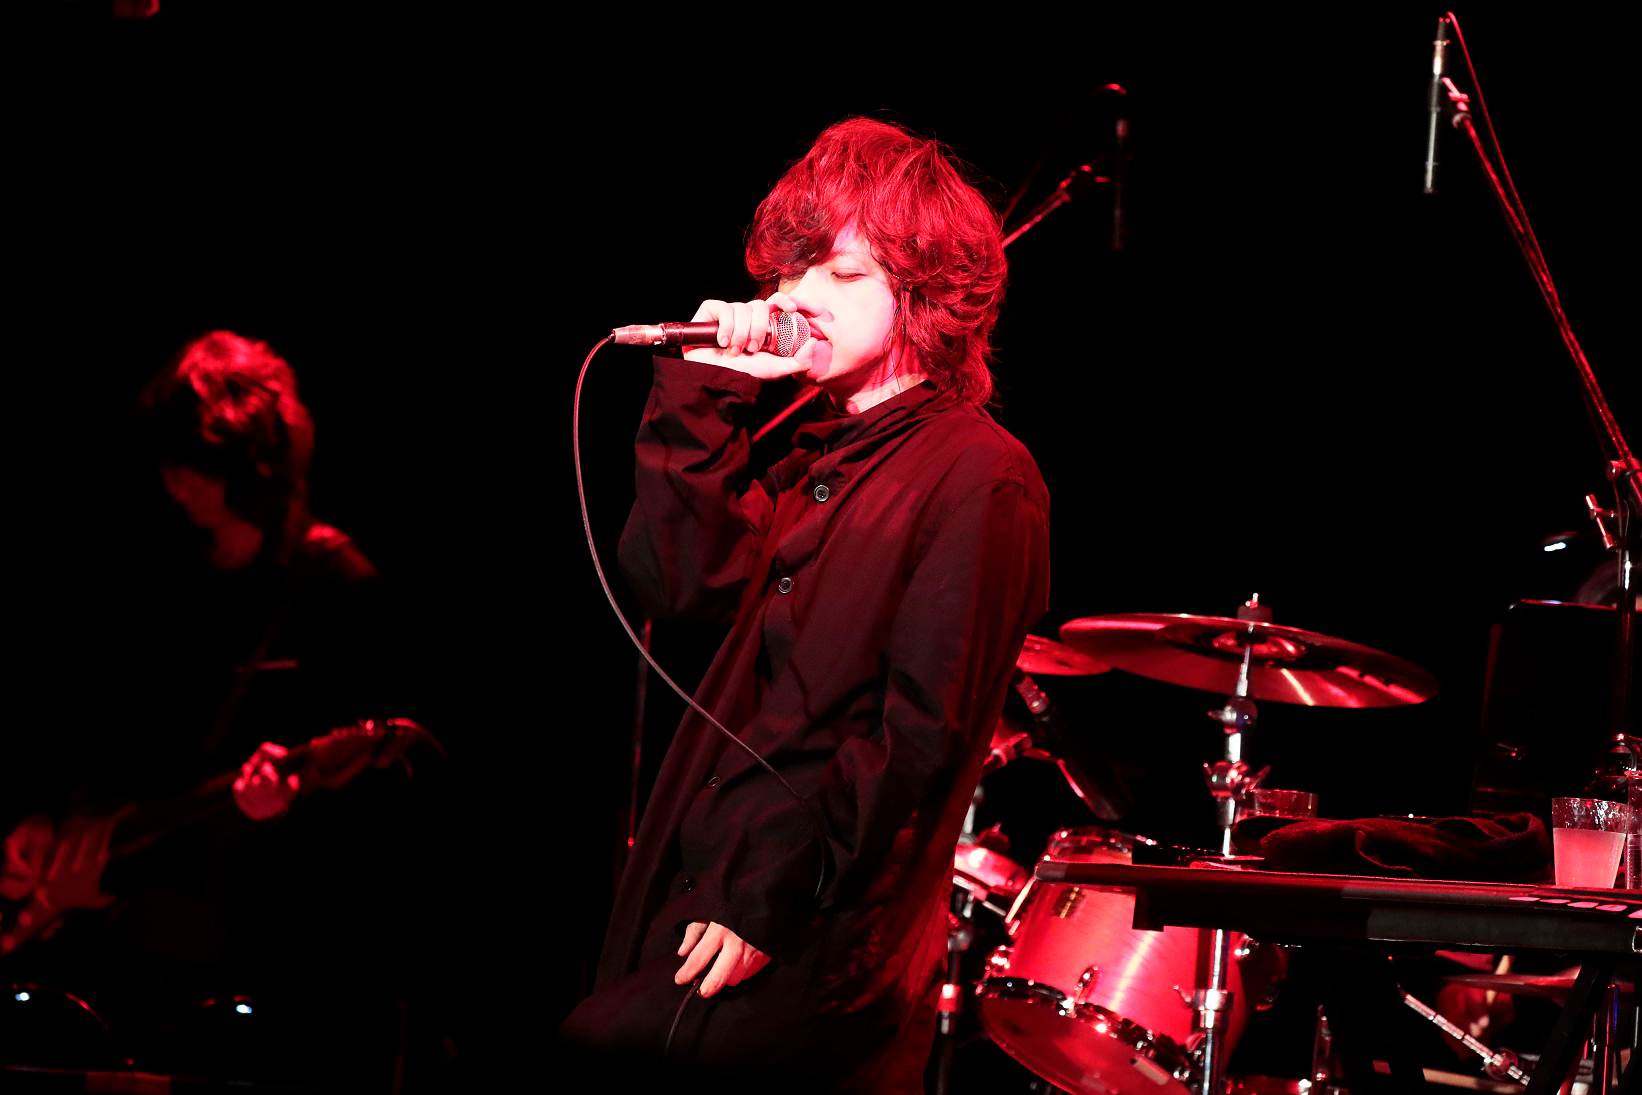 清春 『KIYOHARU 25 TIMES DEBUT DAY』 Photo 柏田芳敬